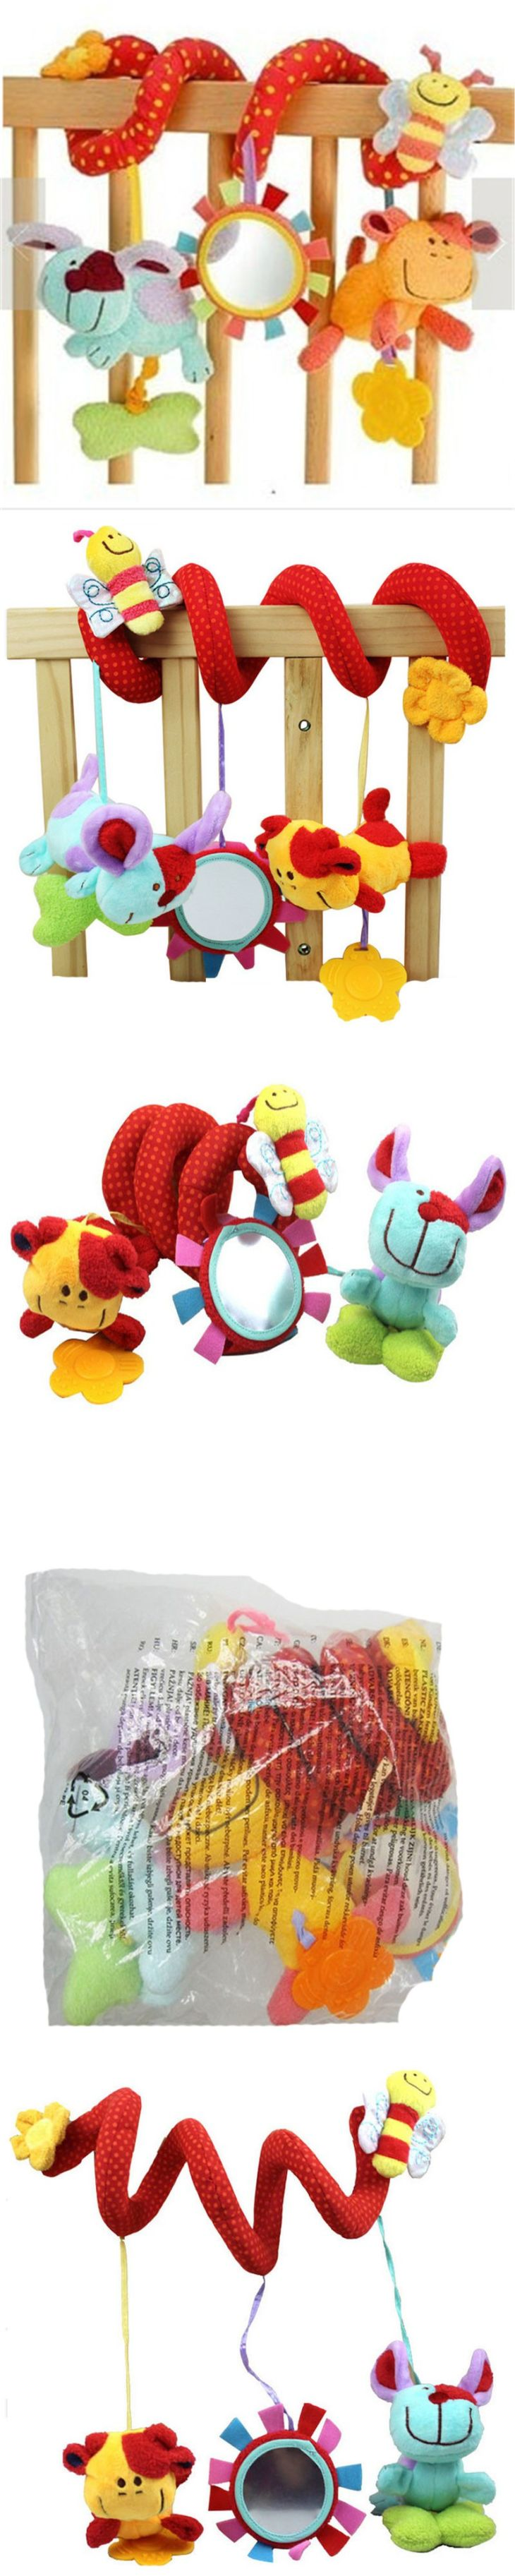 New baby soft crib toy animal friends pull ring bed around